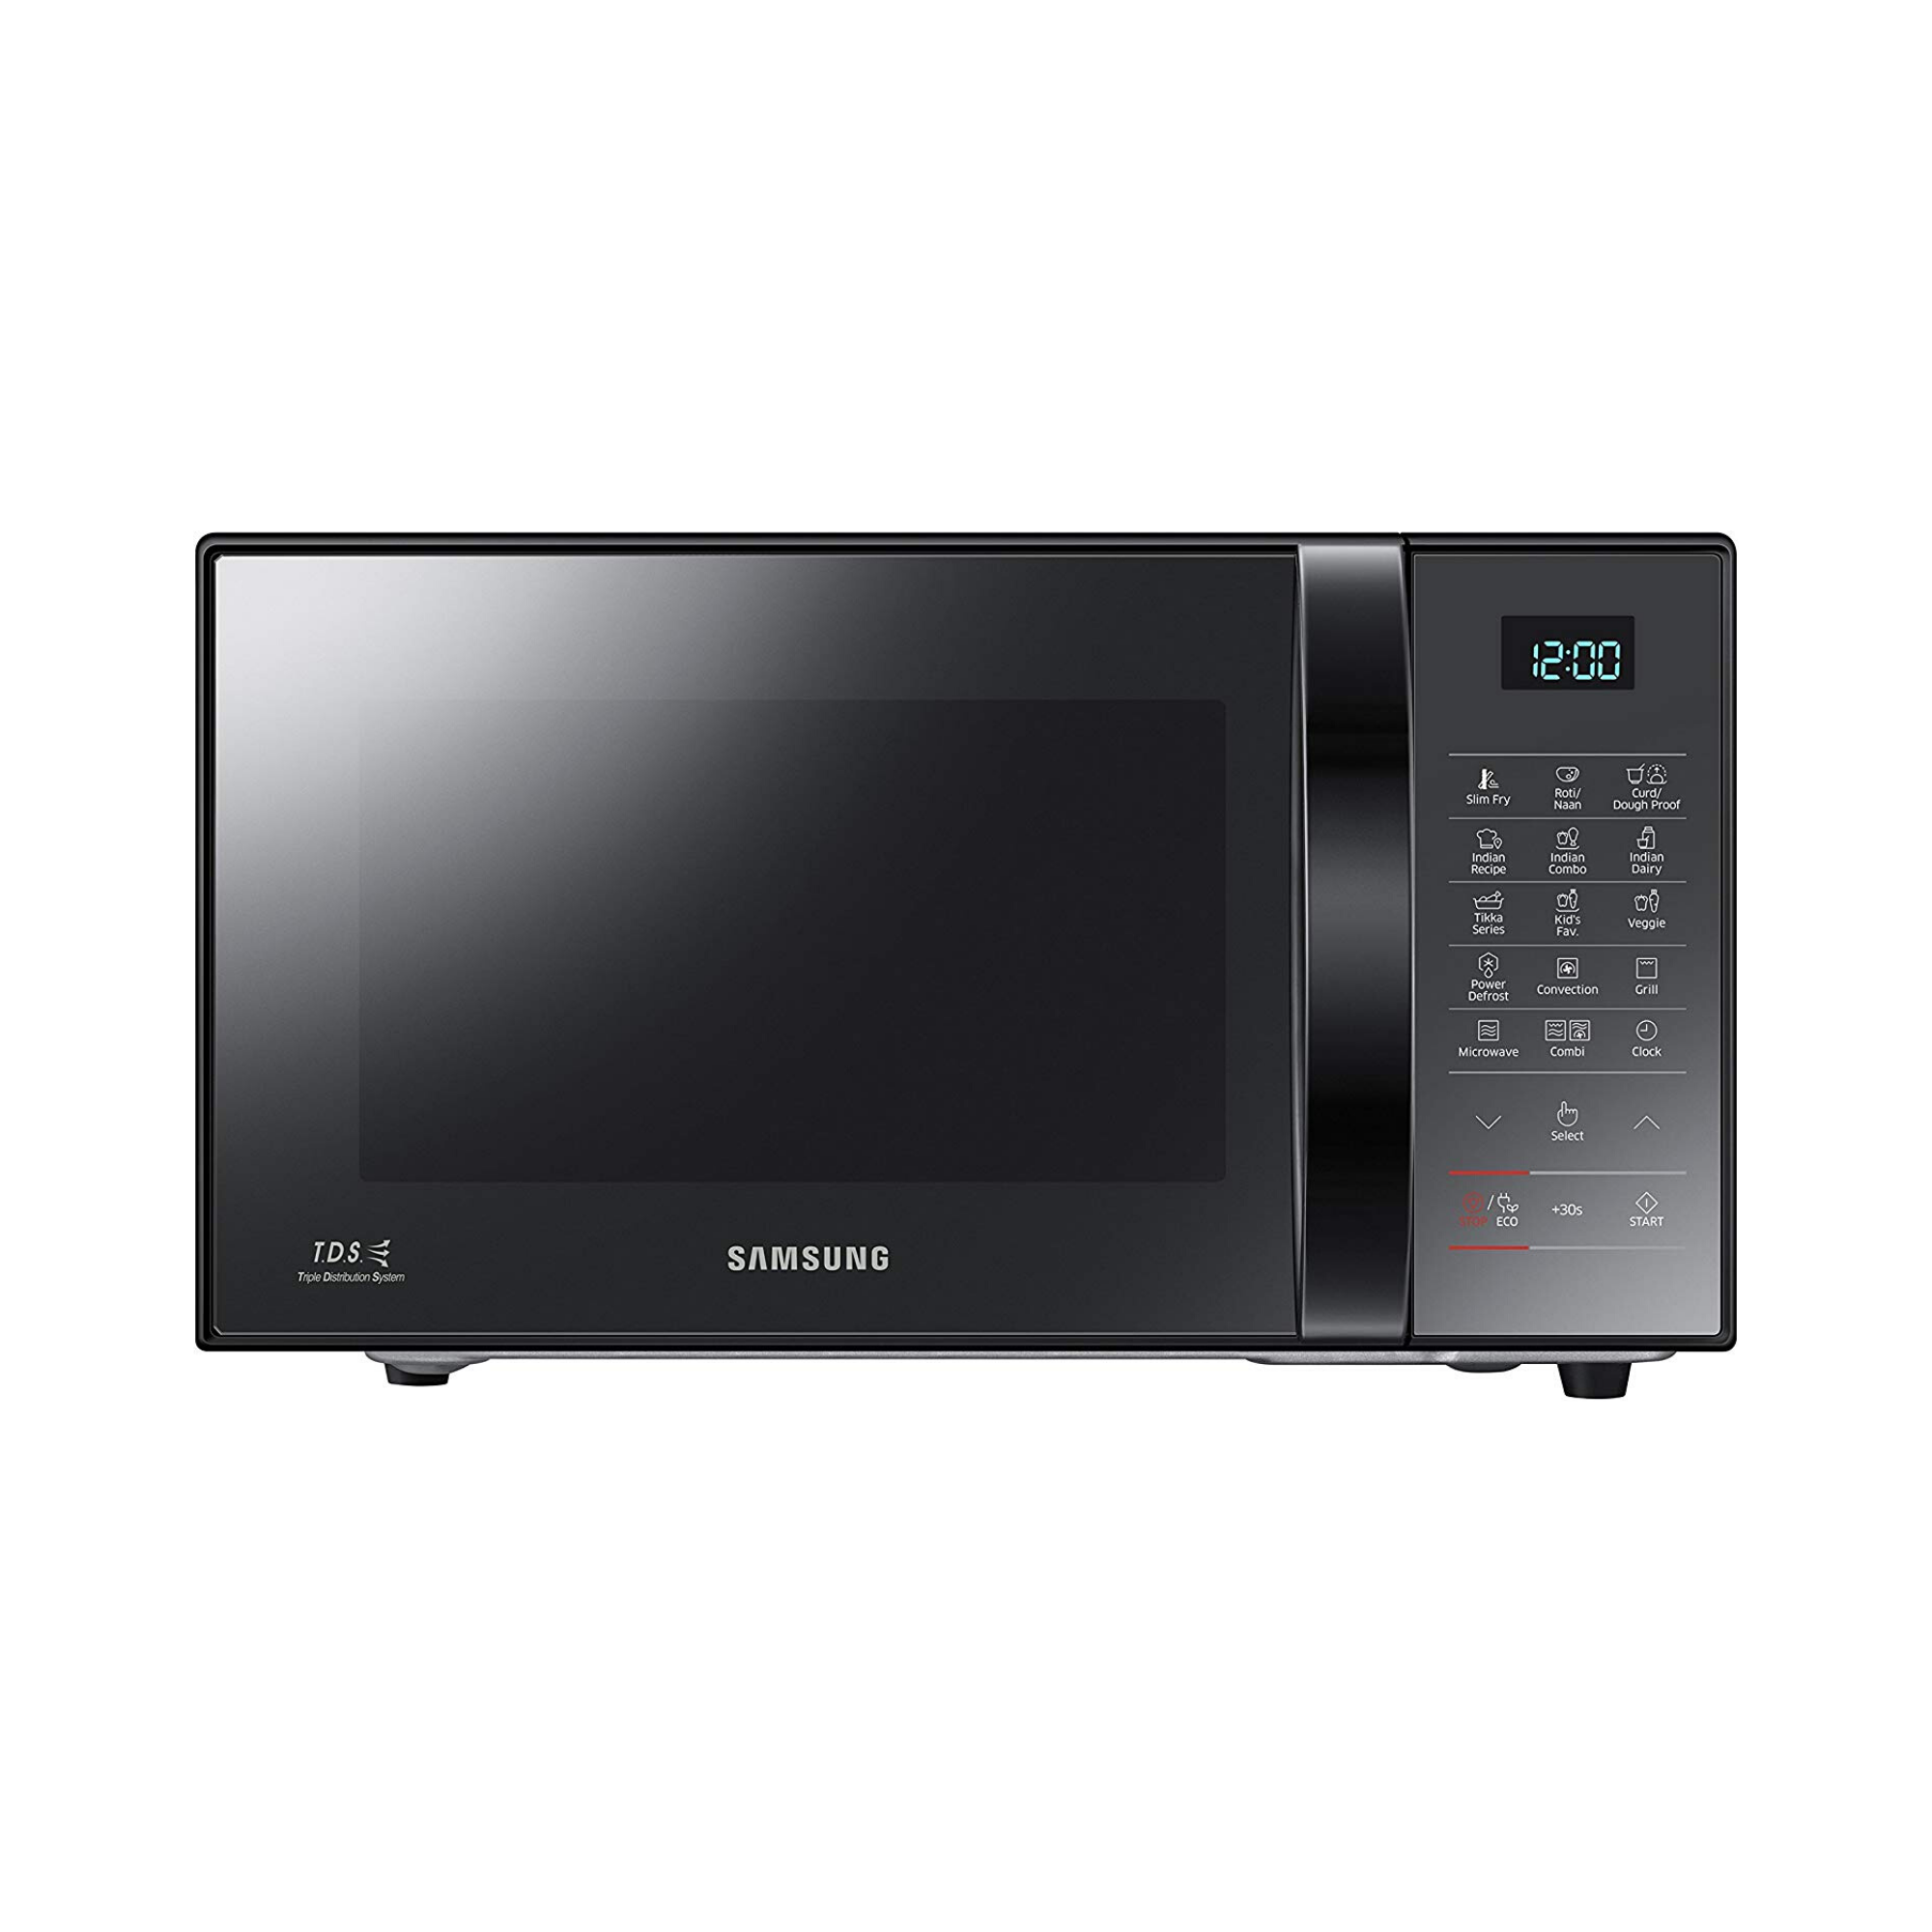 Samsung 21 L Convection Microwave Oven (CE78JD-M_TL, Black)